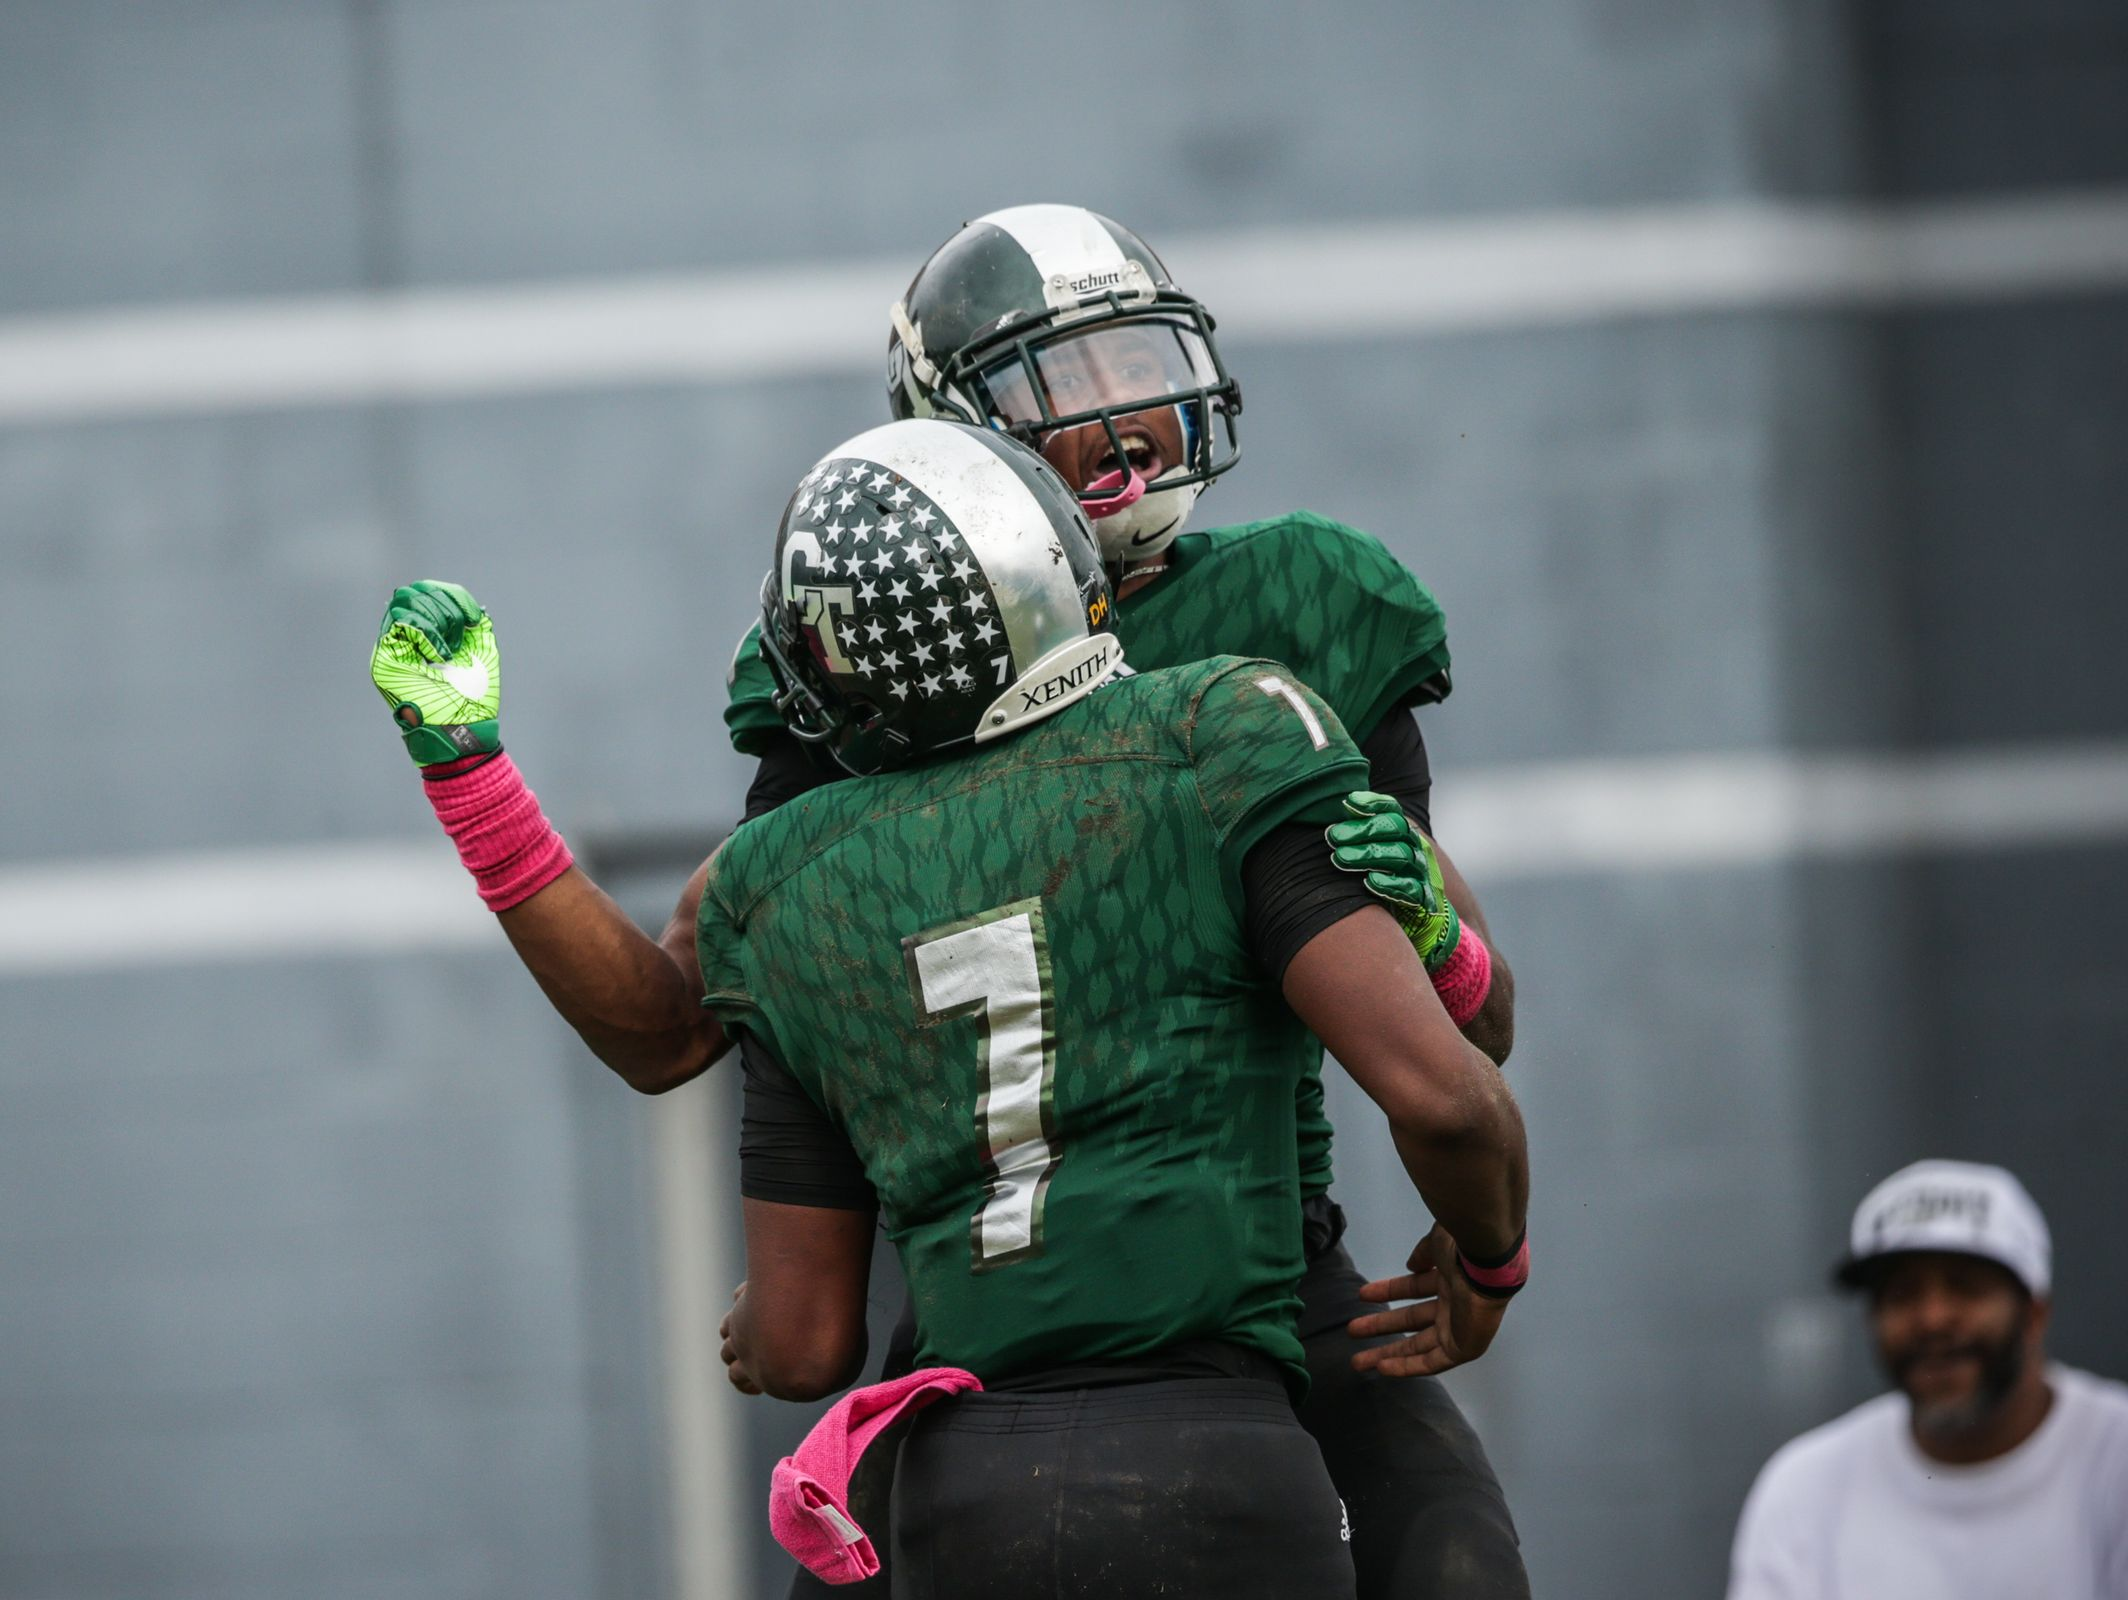 Cass Tech's (9) Donovan Peoples-Jones and (7) Rodney Hall celebrate a touchdown during Cass Tech's 35-7 win over Dearborn Fordson Saturday in Detroit.